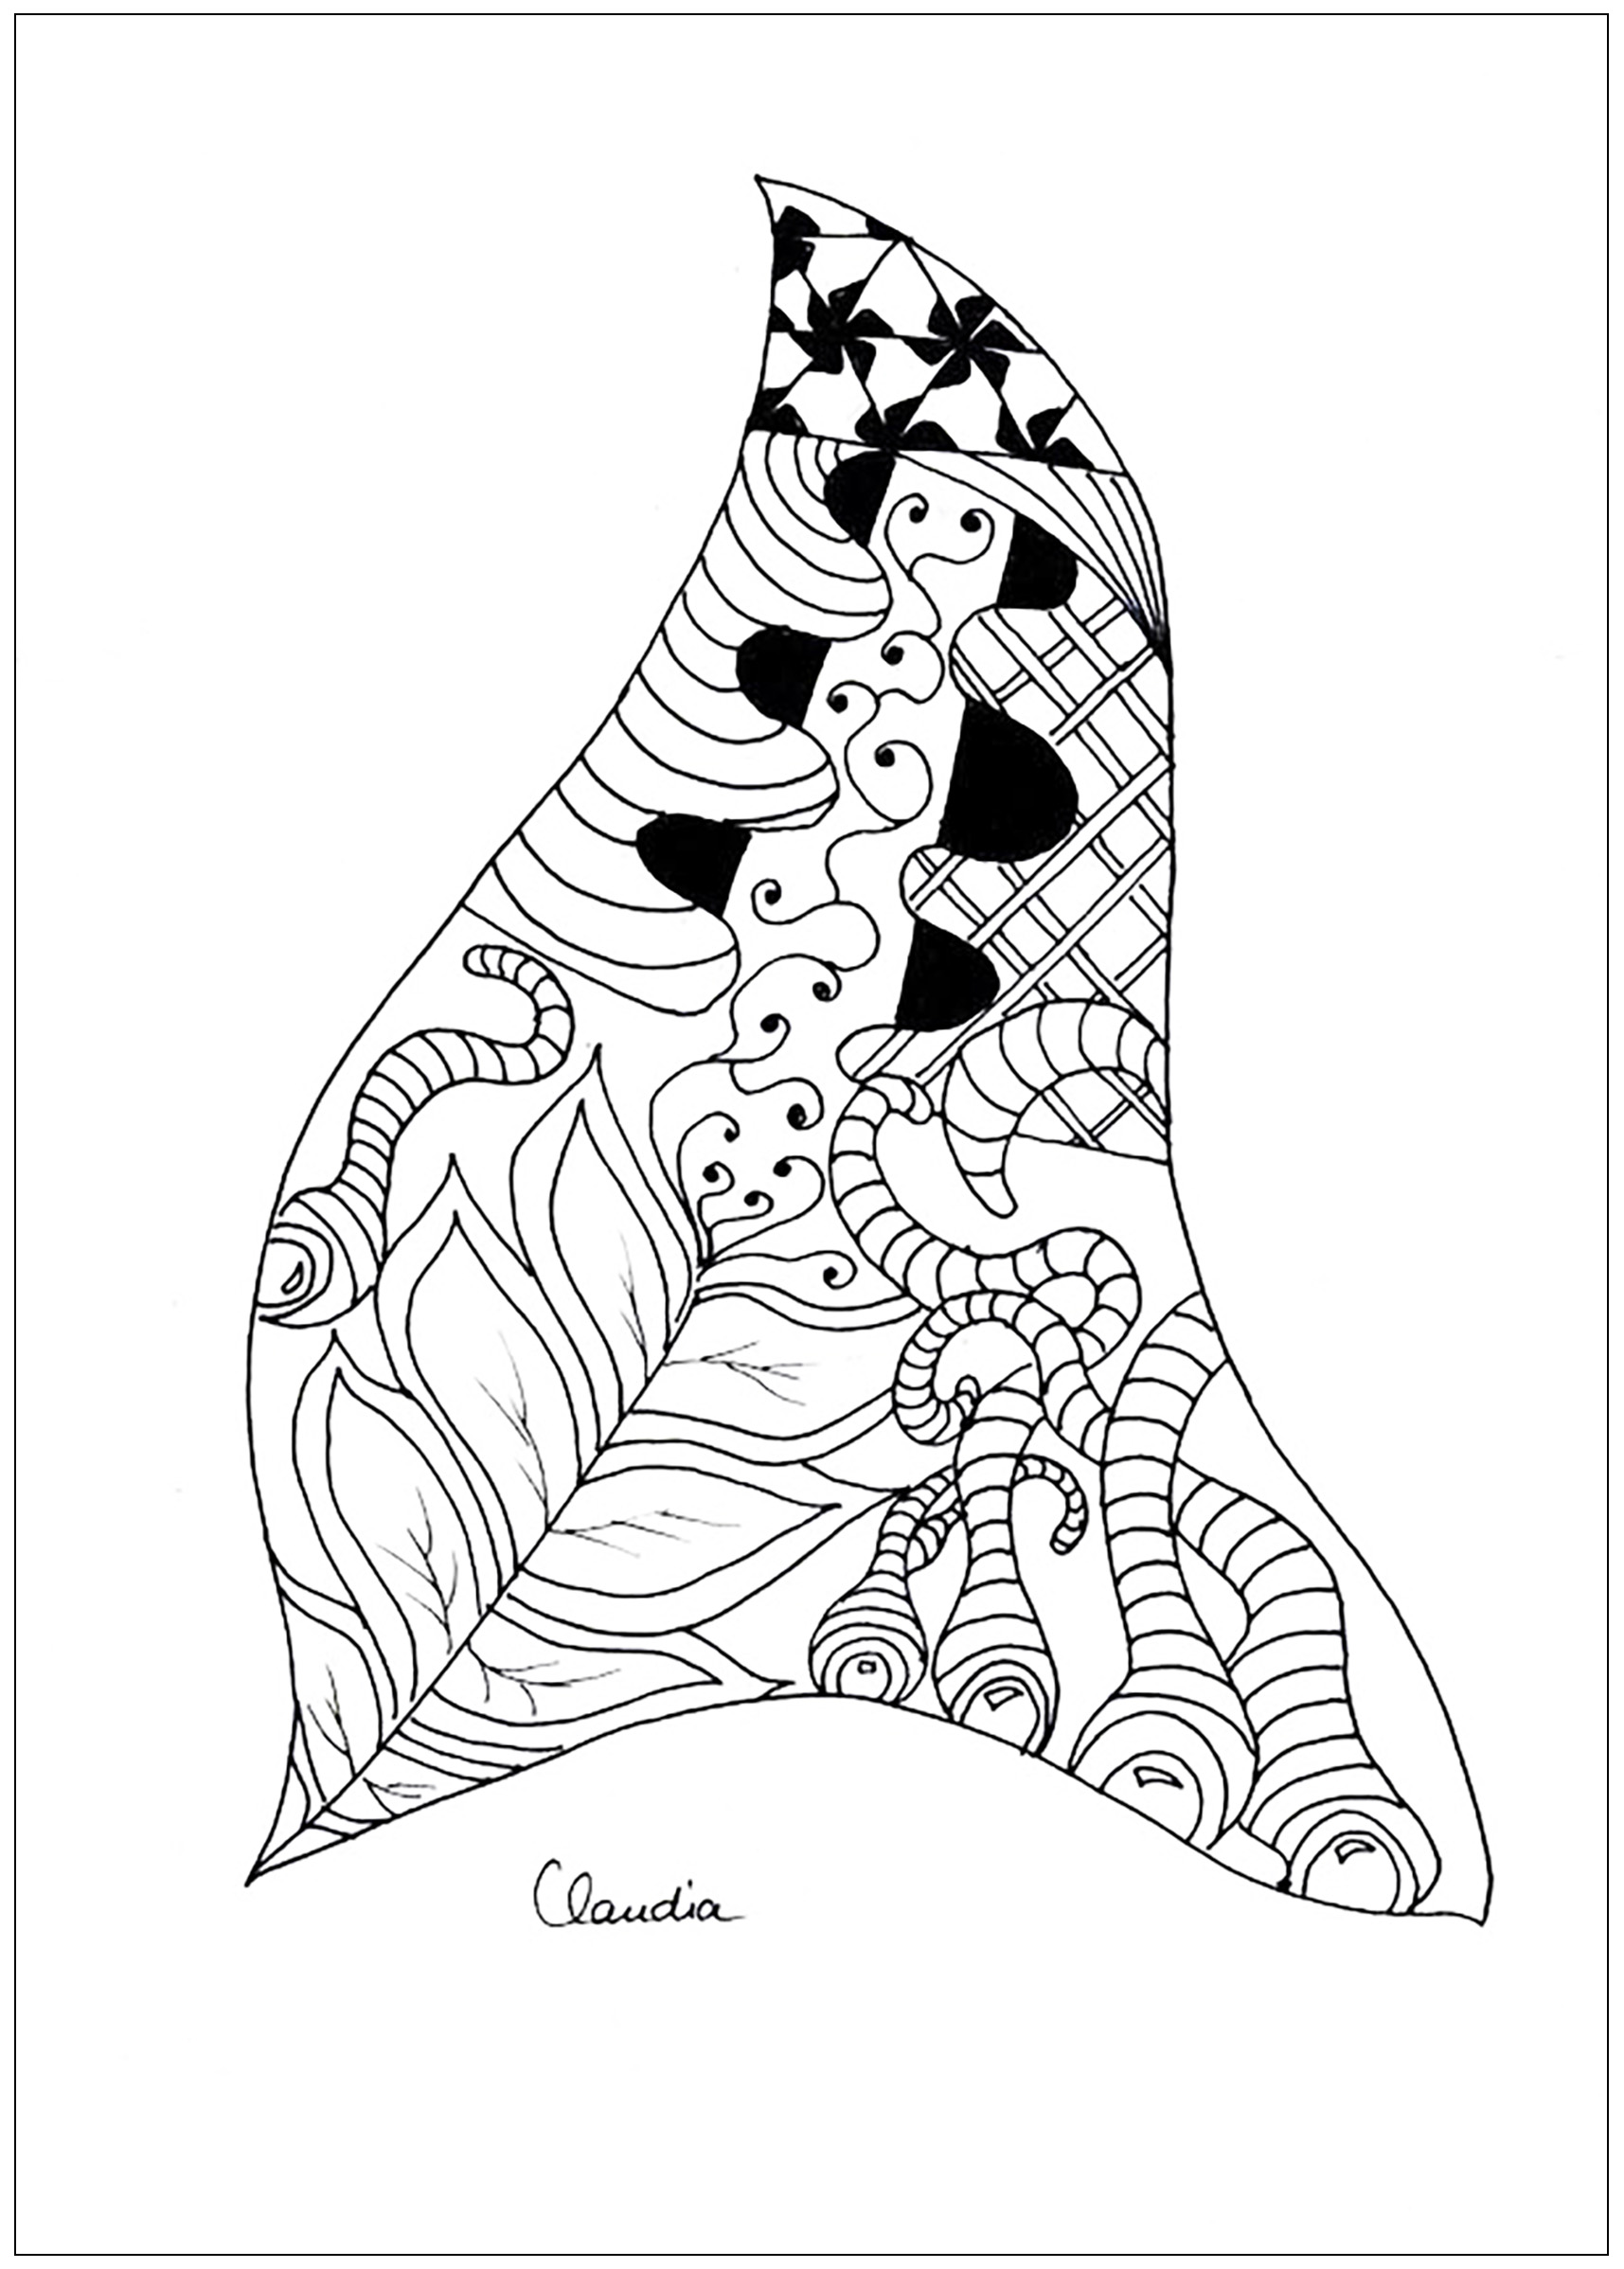 coloring pages zentangle lines of the peacock zentangle adult coloring pages pages coloring zentangle